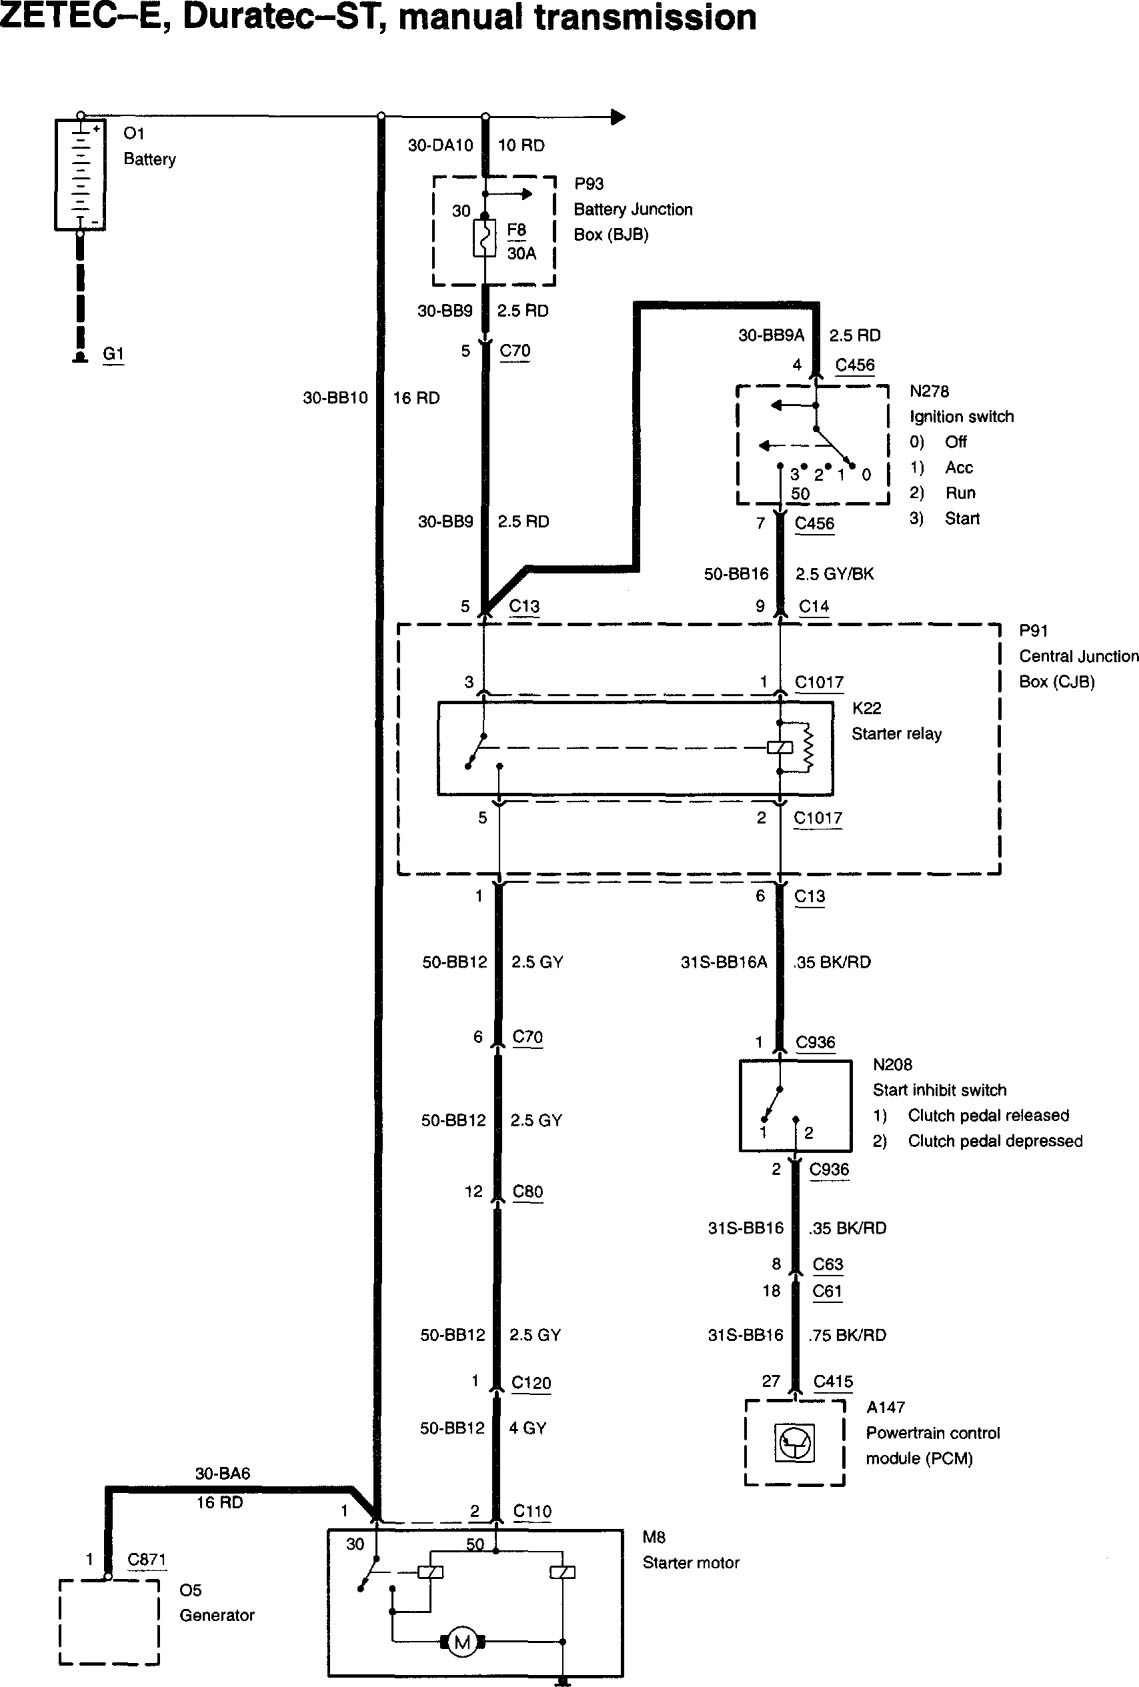 Need Wiring Diagram 2002 Focus Manual Trans - Page 2